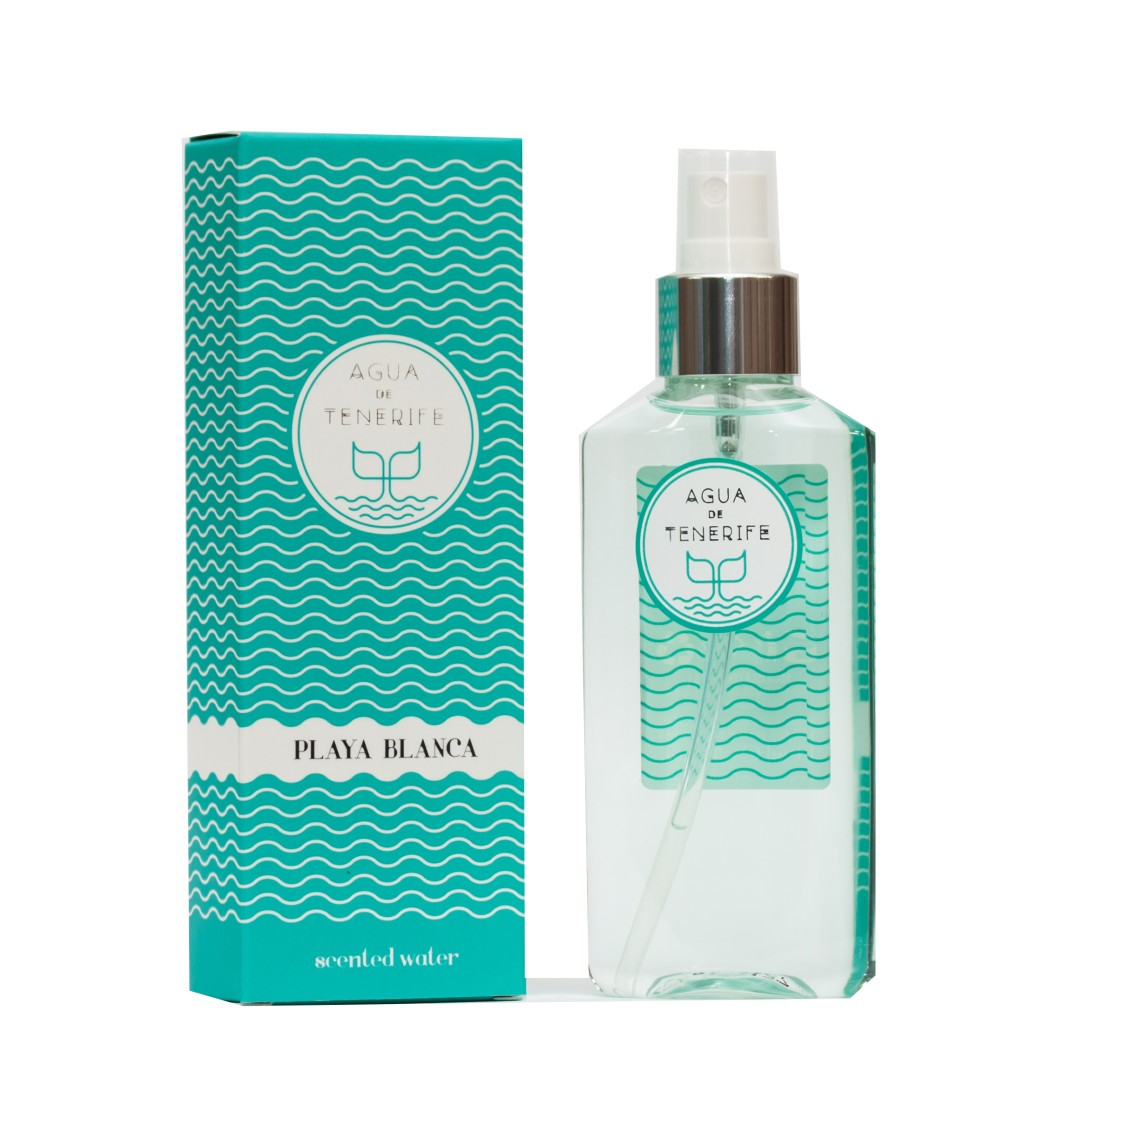 shop Agua de Tenerife  LAS FRAGANCIAS DE LA ISLA: Playa Blanca Scented Water 100 ml.